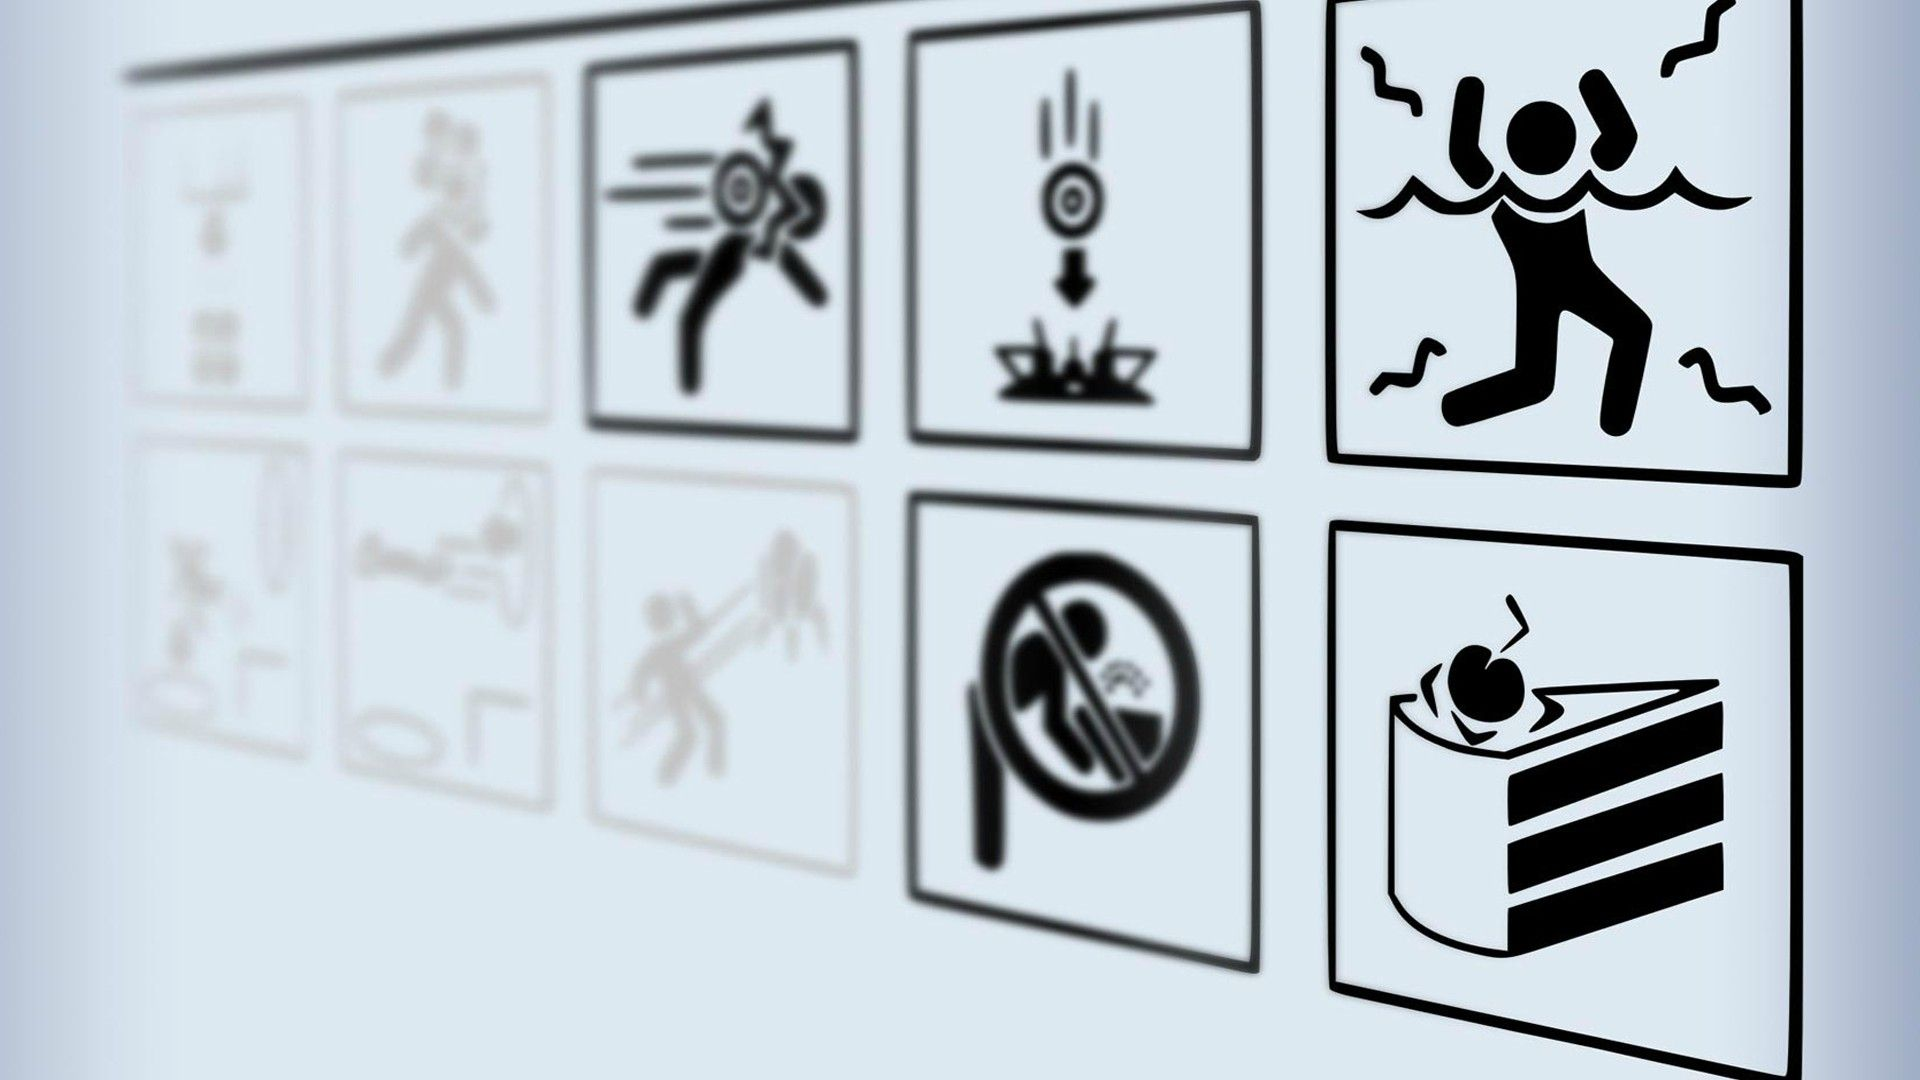 Portal Instruction Board wallpaper Portal wallpaper